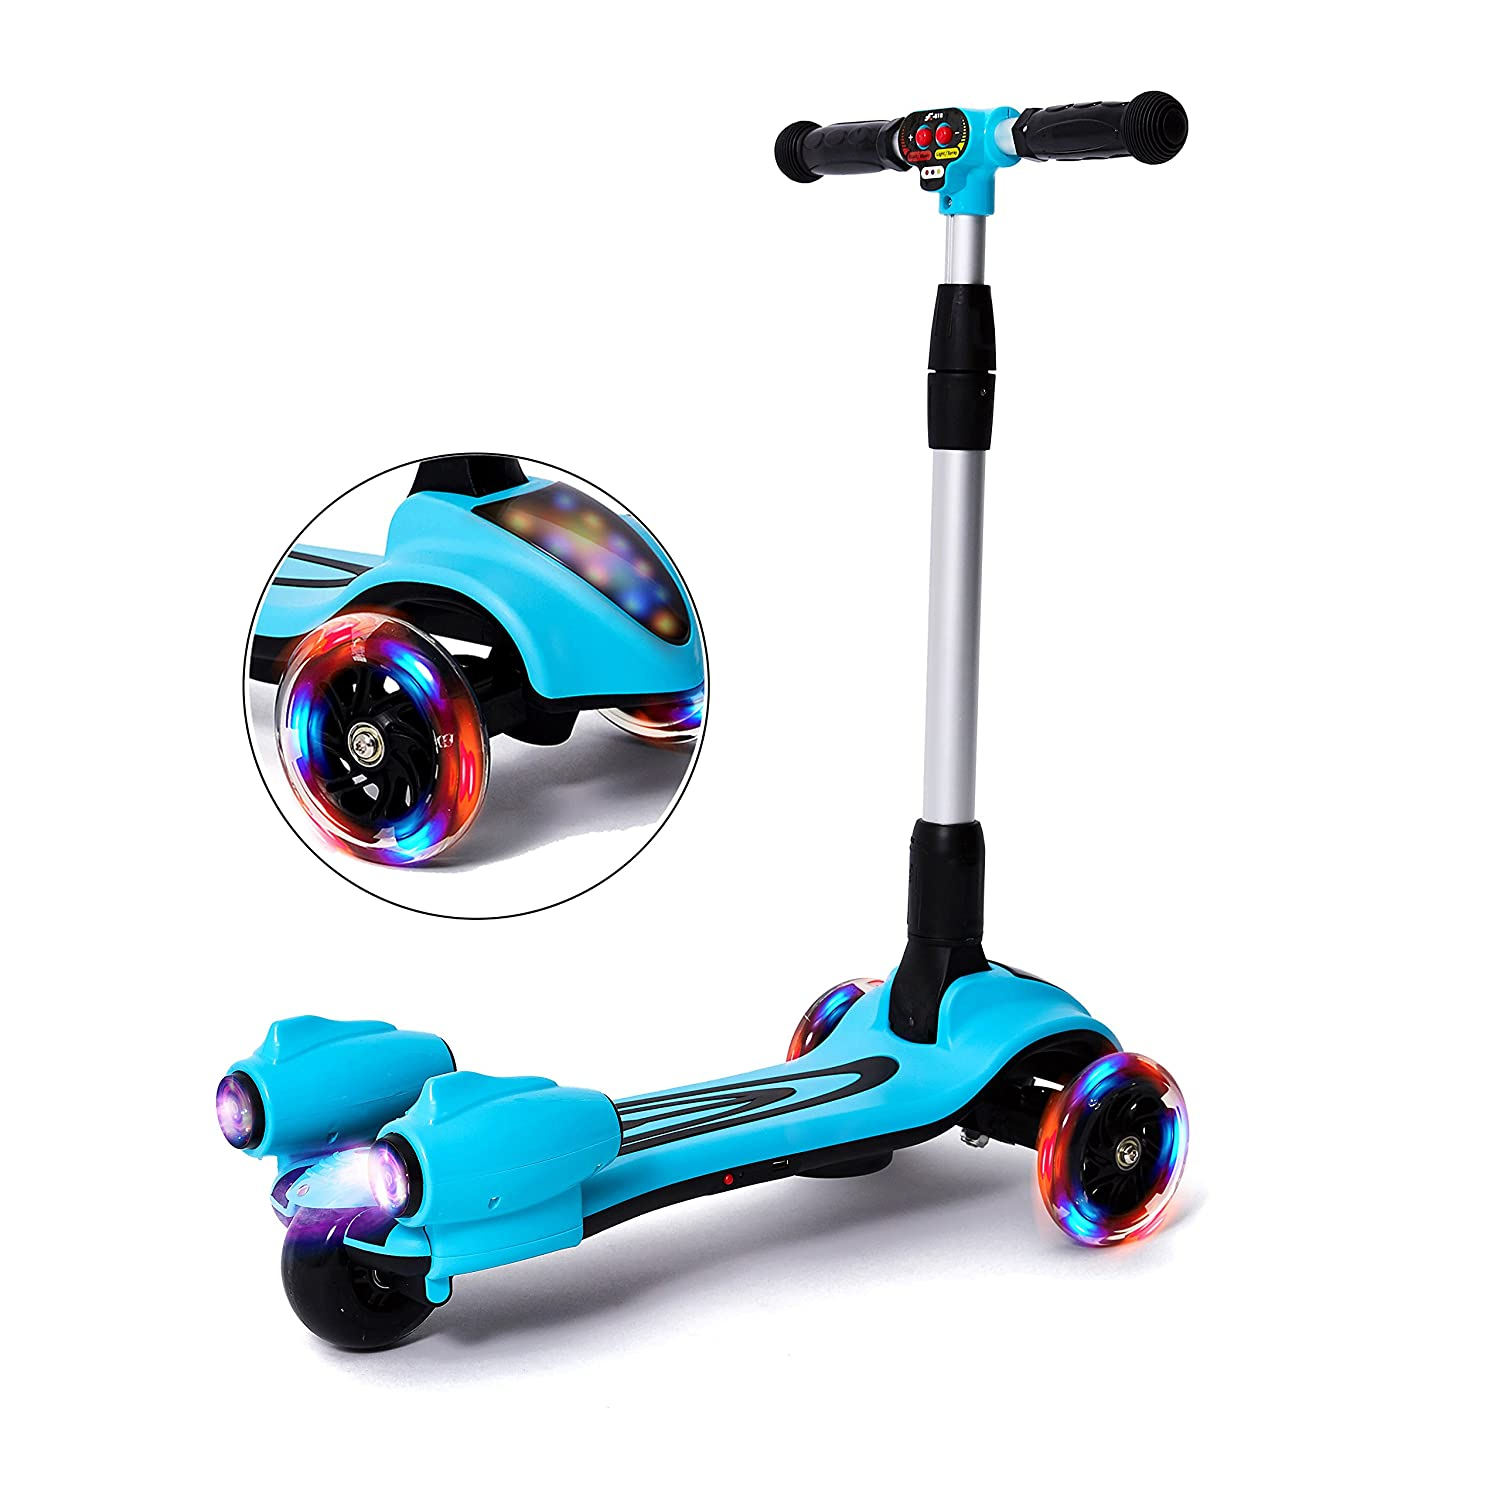 MammyGol Kick Scooters for Kids,Adjustable Handle  Folding LED Spray Jet Scooter, 3 wheeled, 110lb Weight Limit, age 3-8